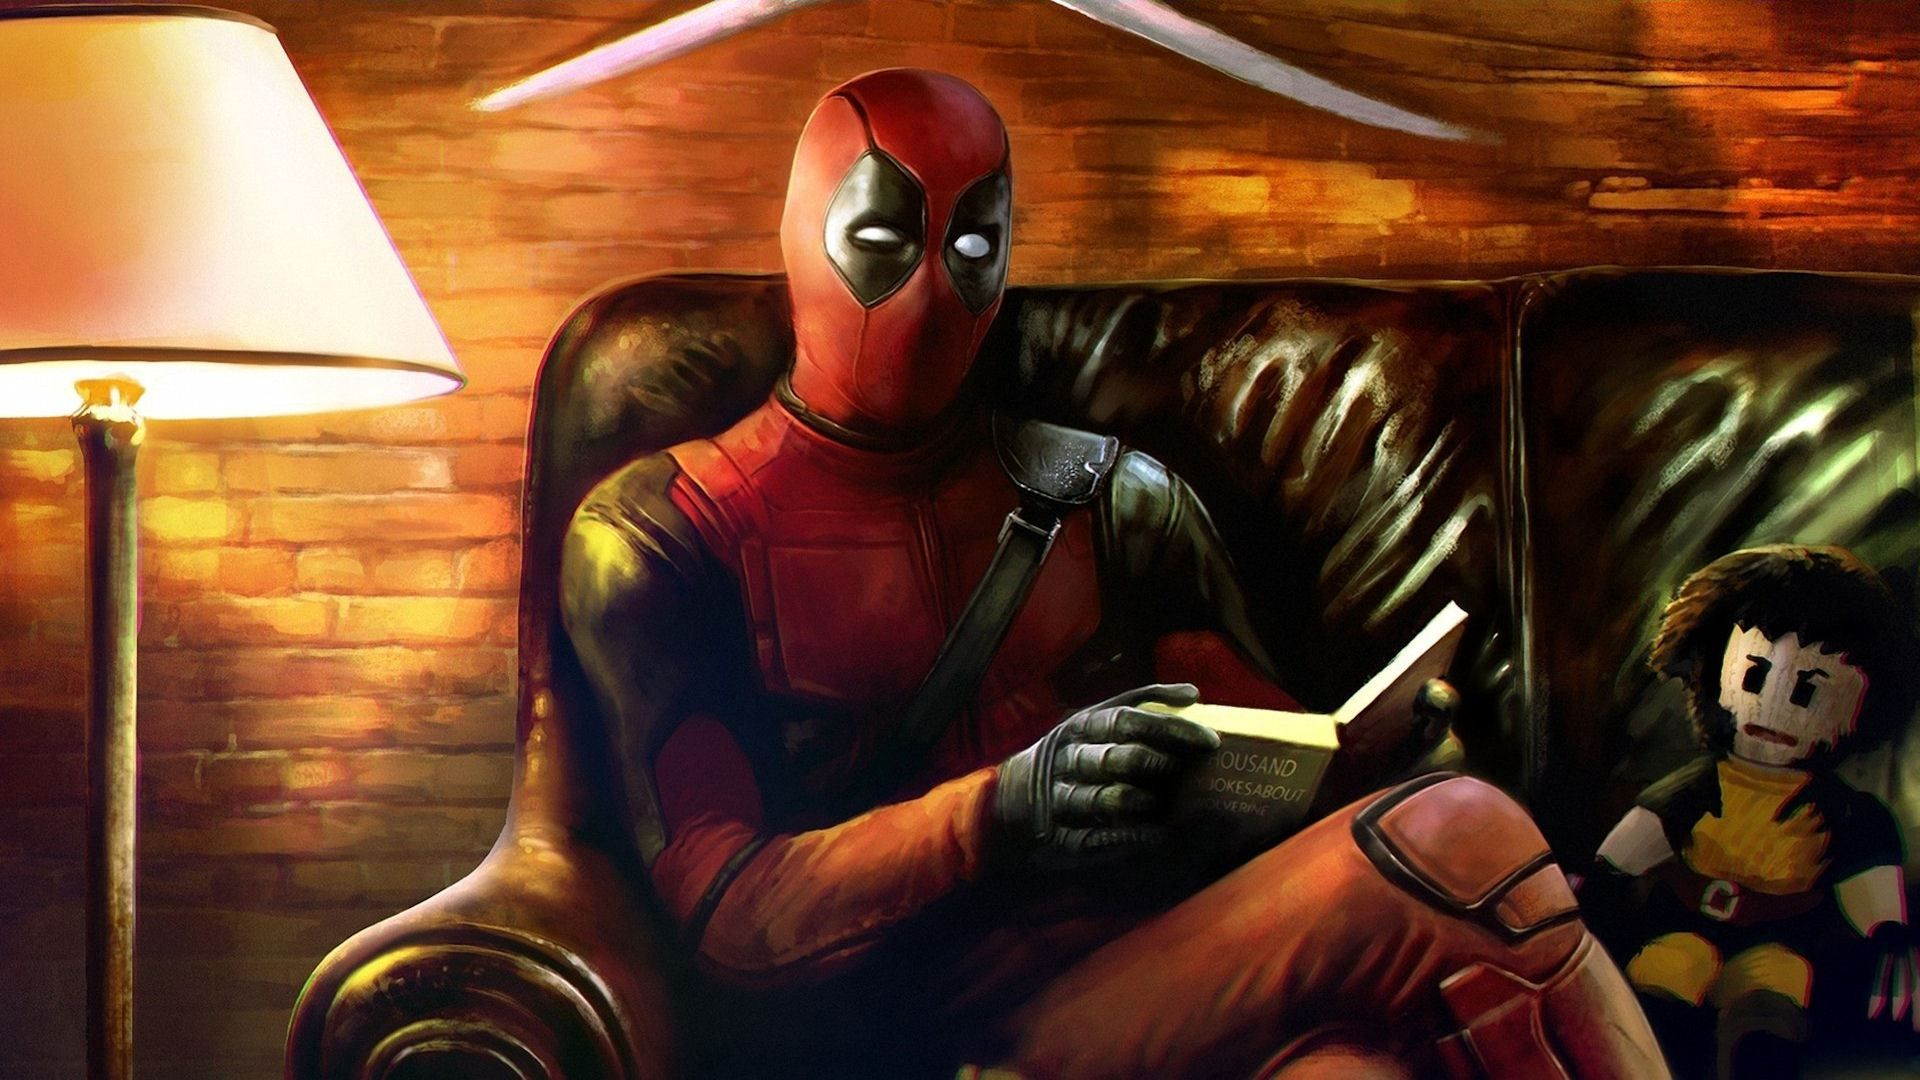 45 X Cool Marvel Wallpapers Hd Epic Heroes Select Image Gallery